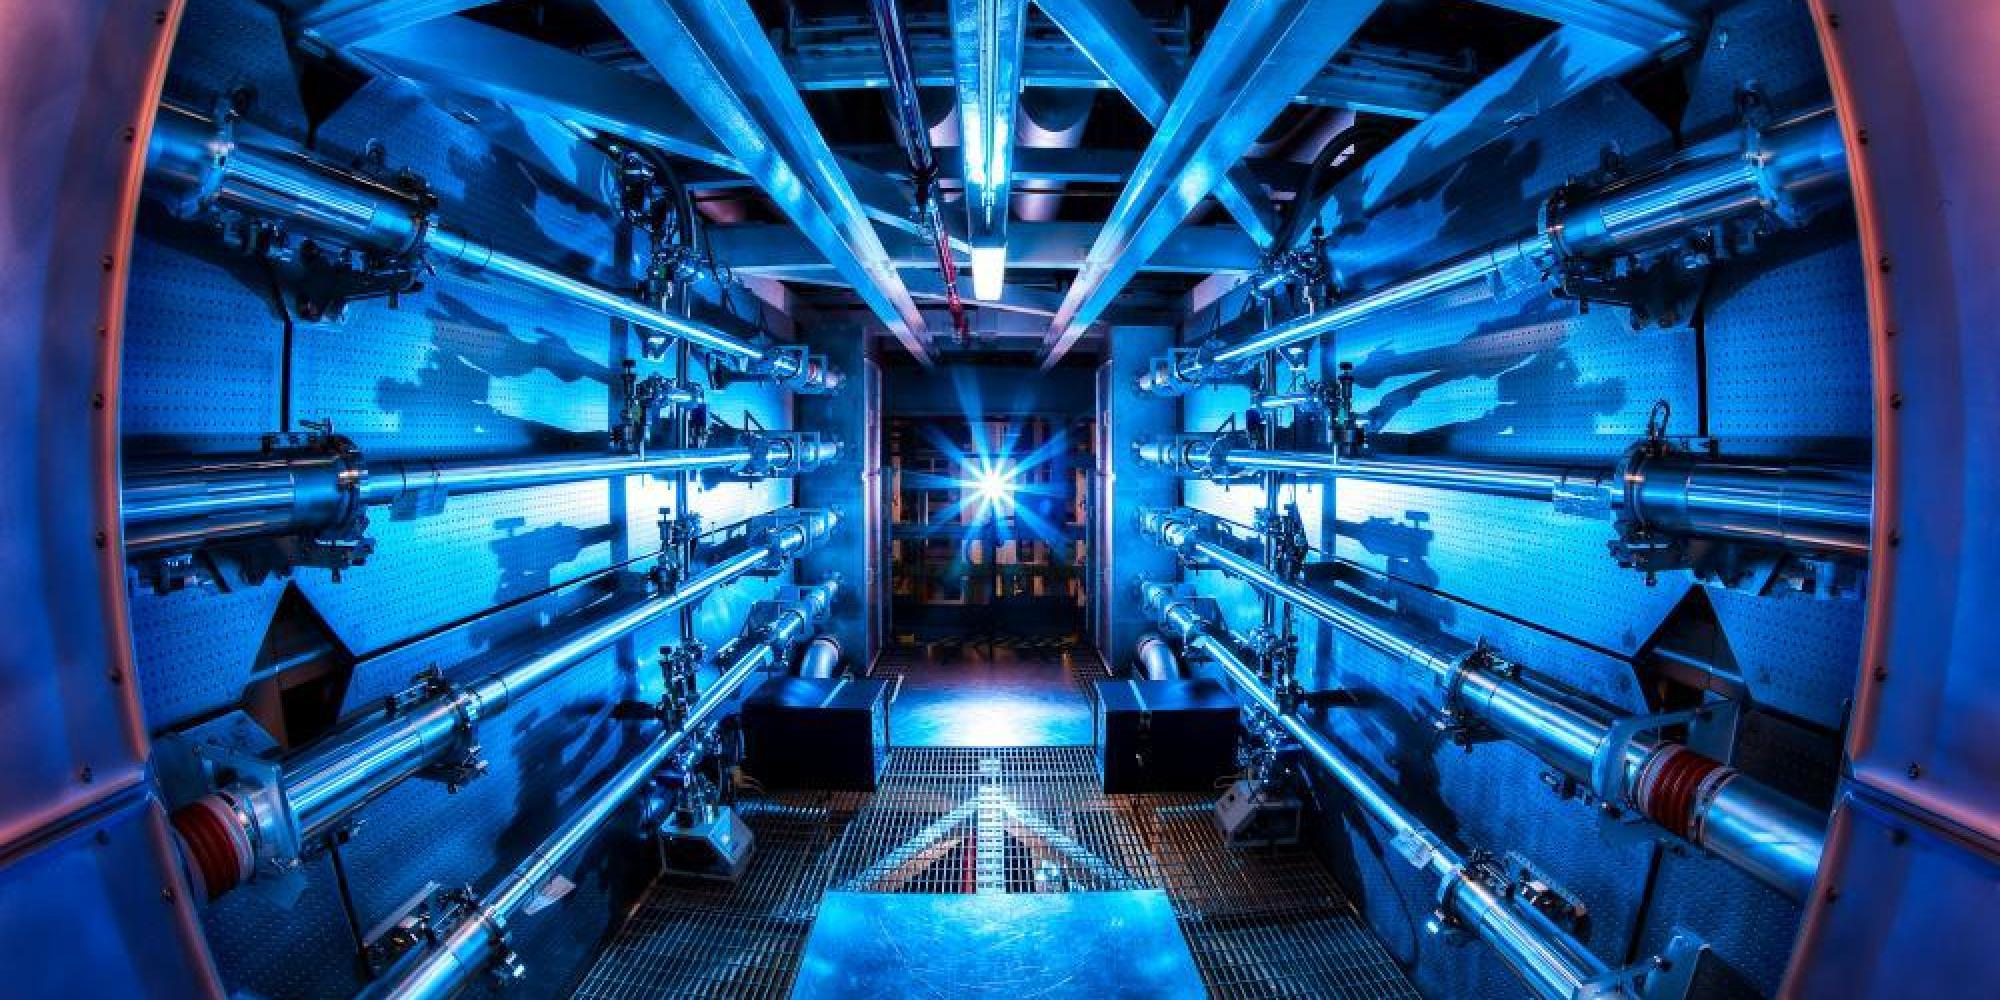 Nuclear Fusion Reactors 'Possible' Report Scientists - But ...